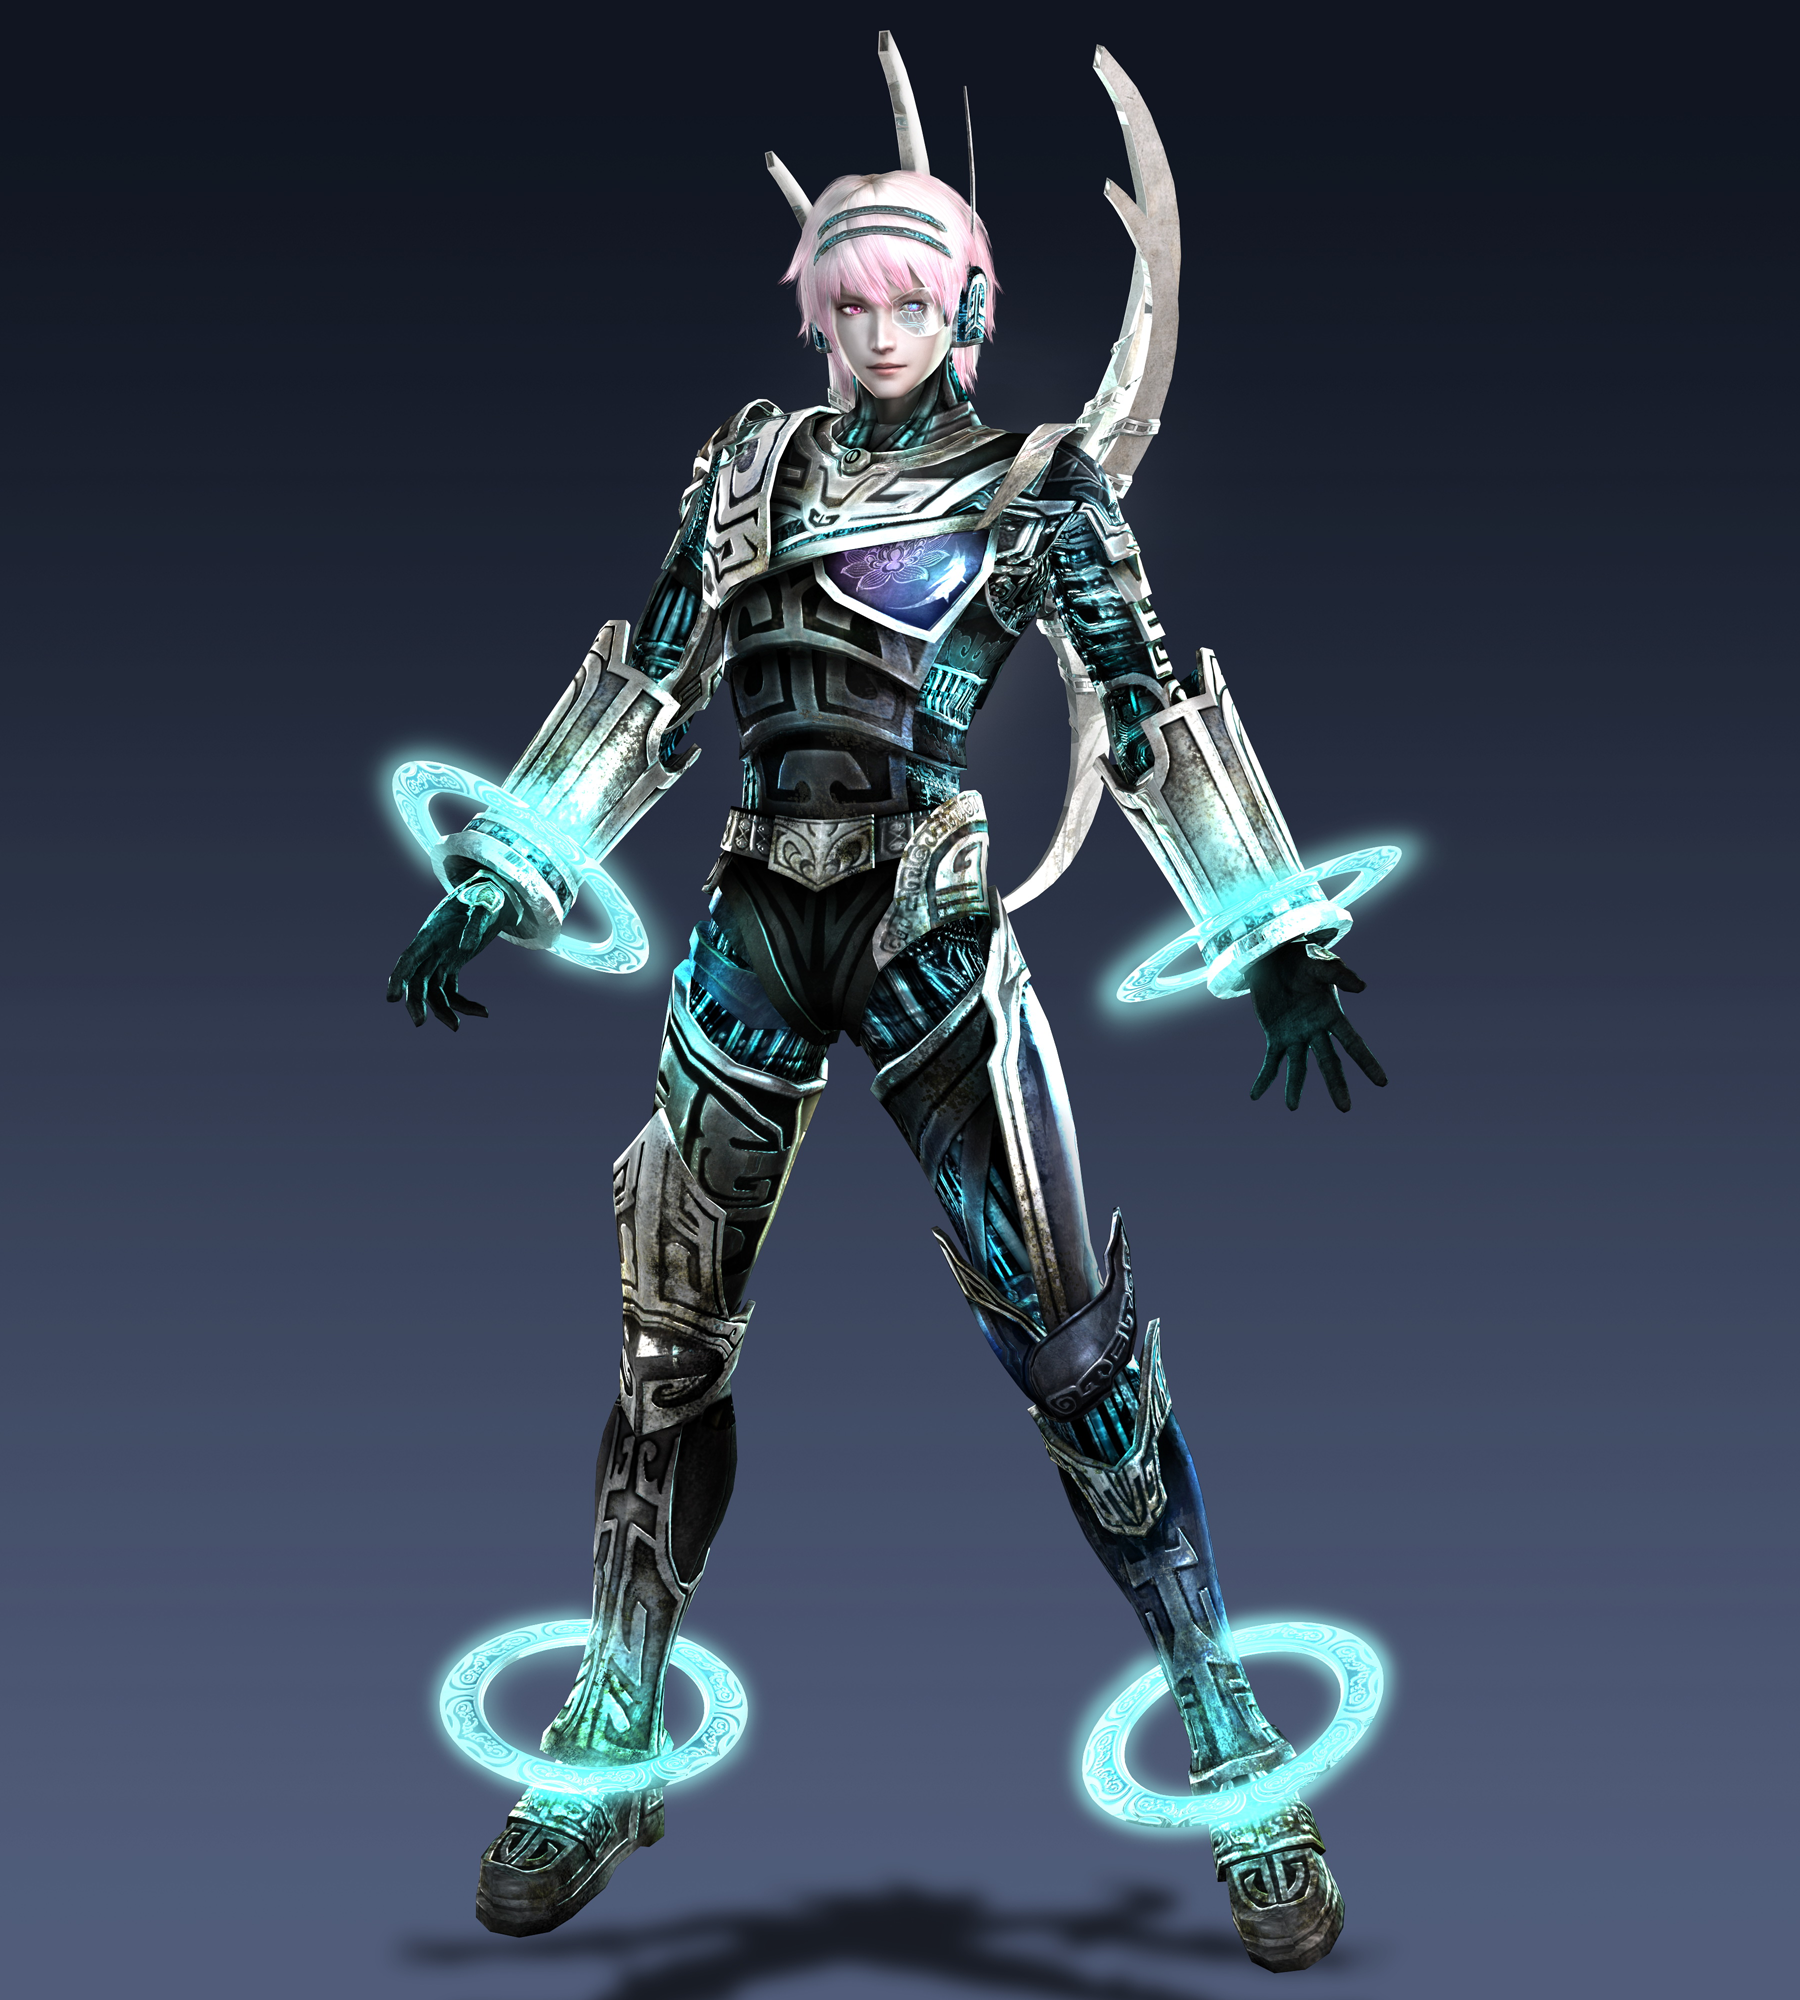 Warriors Orochi 3 World S End: Transformers And Nezha Crossover Coming Soon